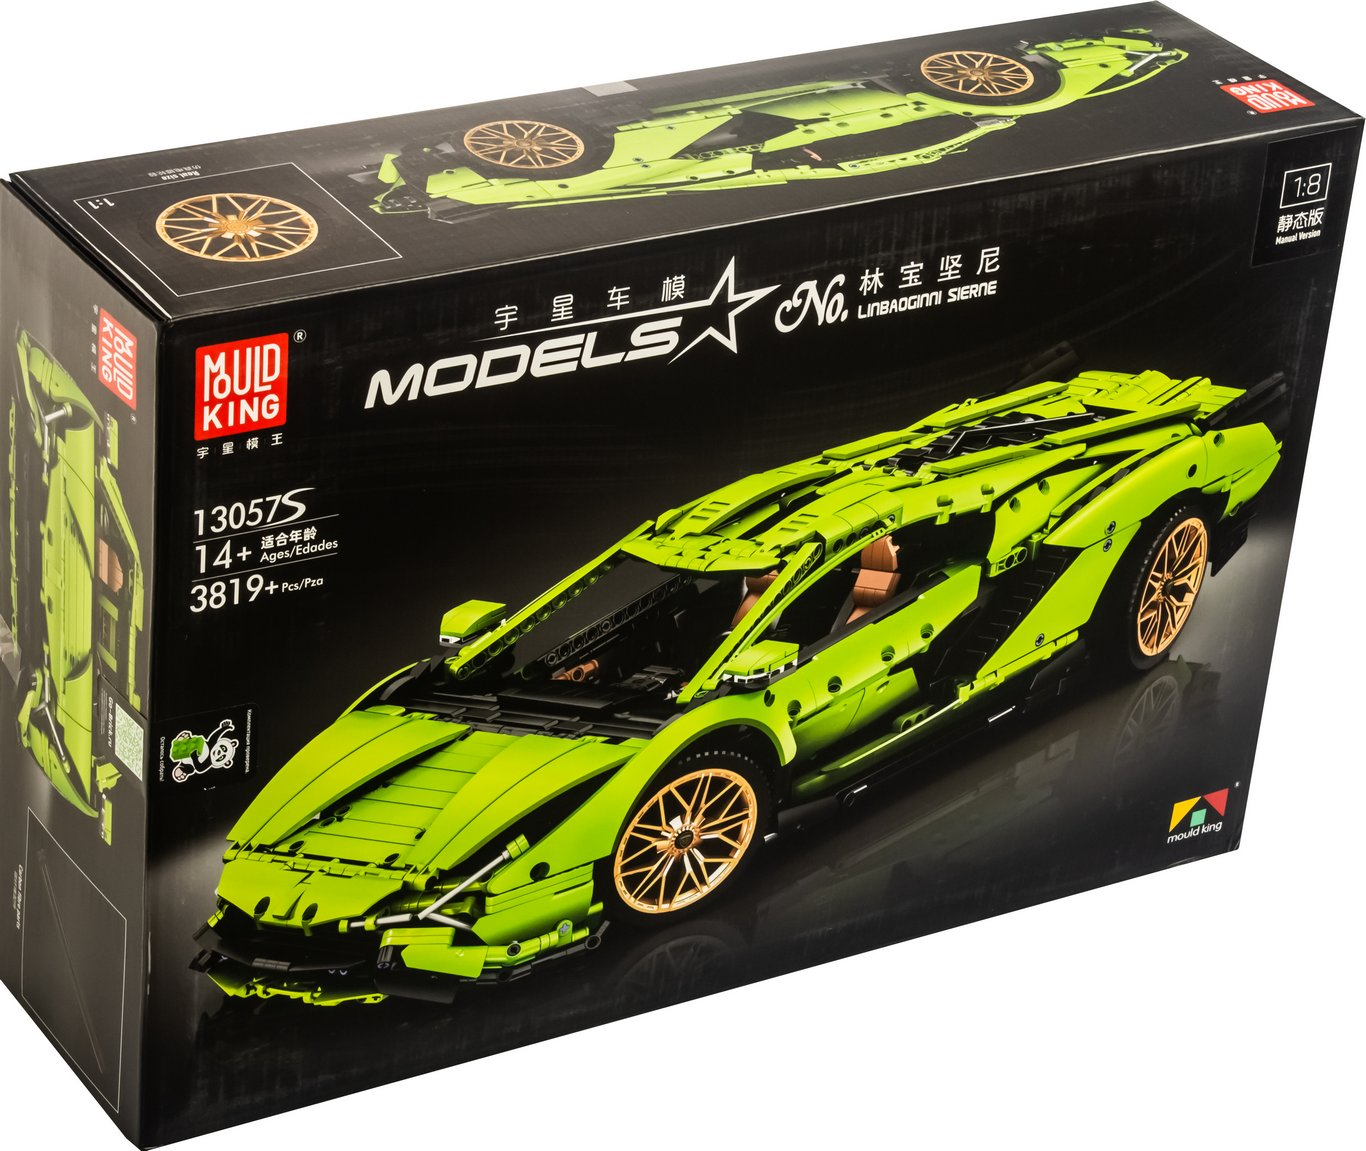 Конструктор Mould King 13057 Lamborghini Sian FKP 37, аналог Lego 42115